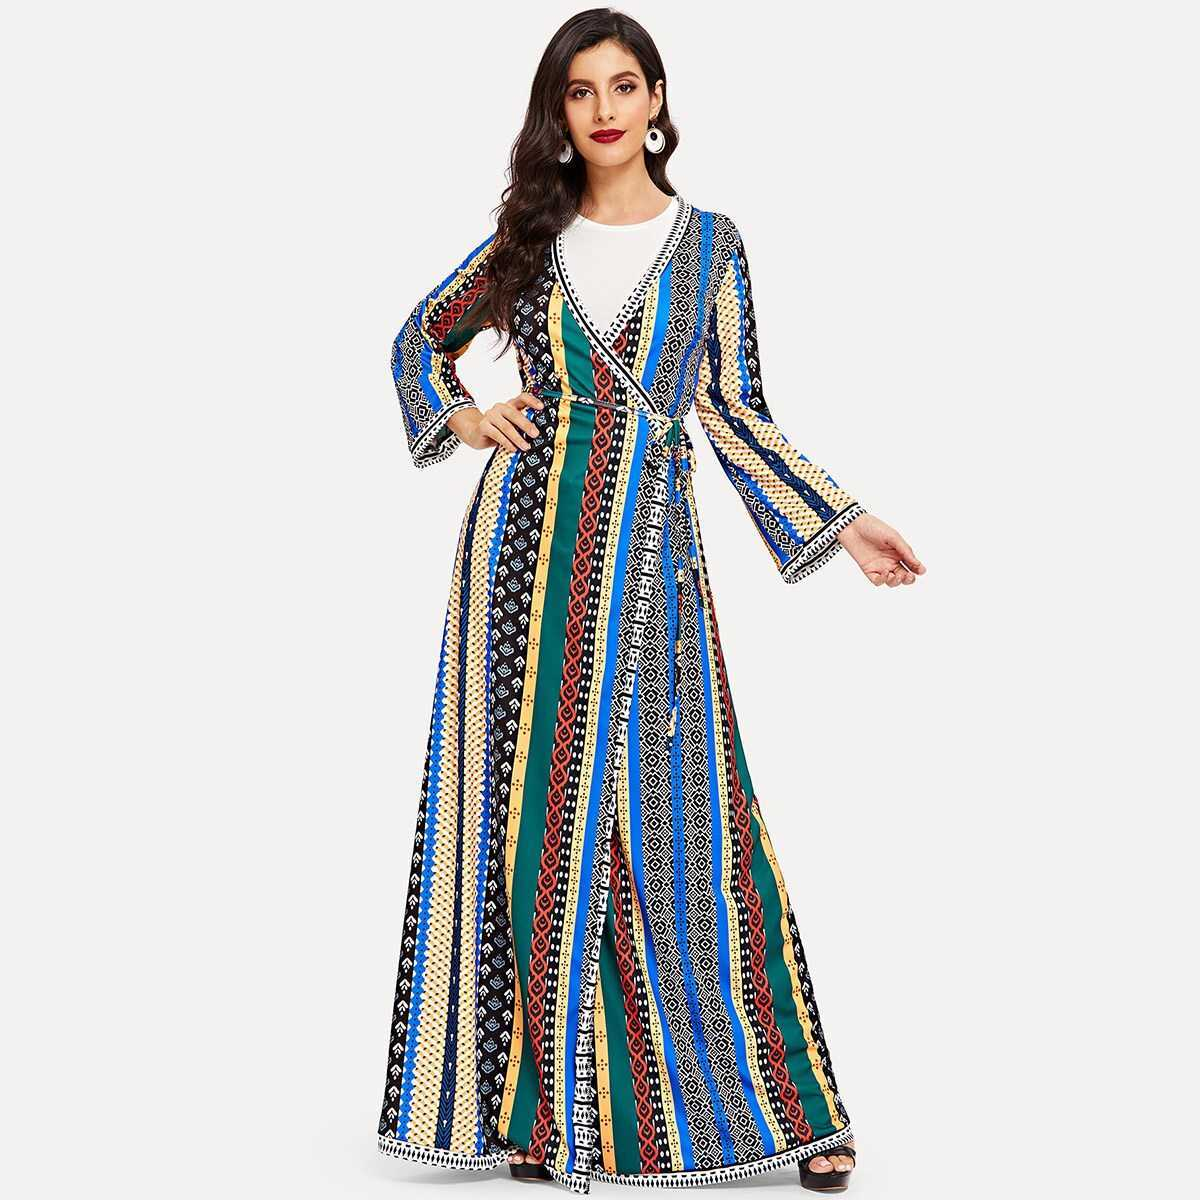 Colorful Striped Belted Wrap Longline Abaya - Shein - GOOFASH